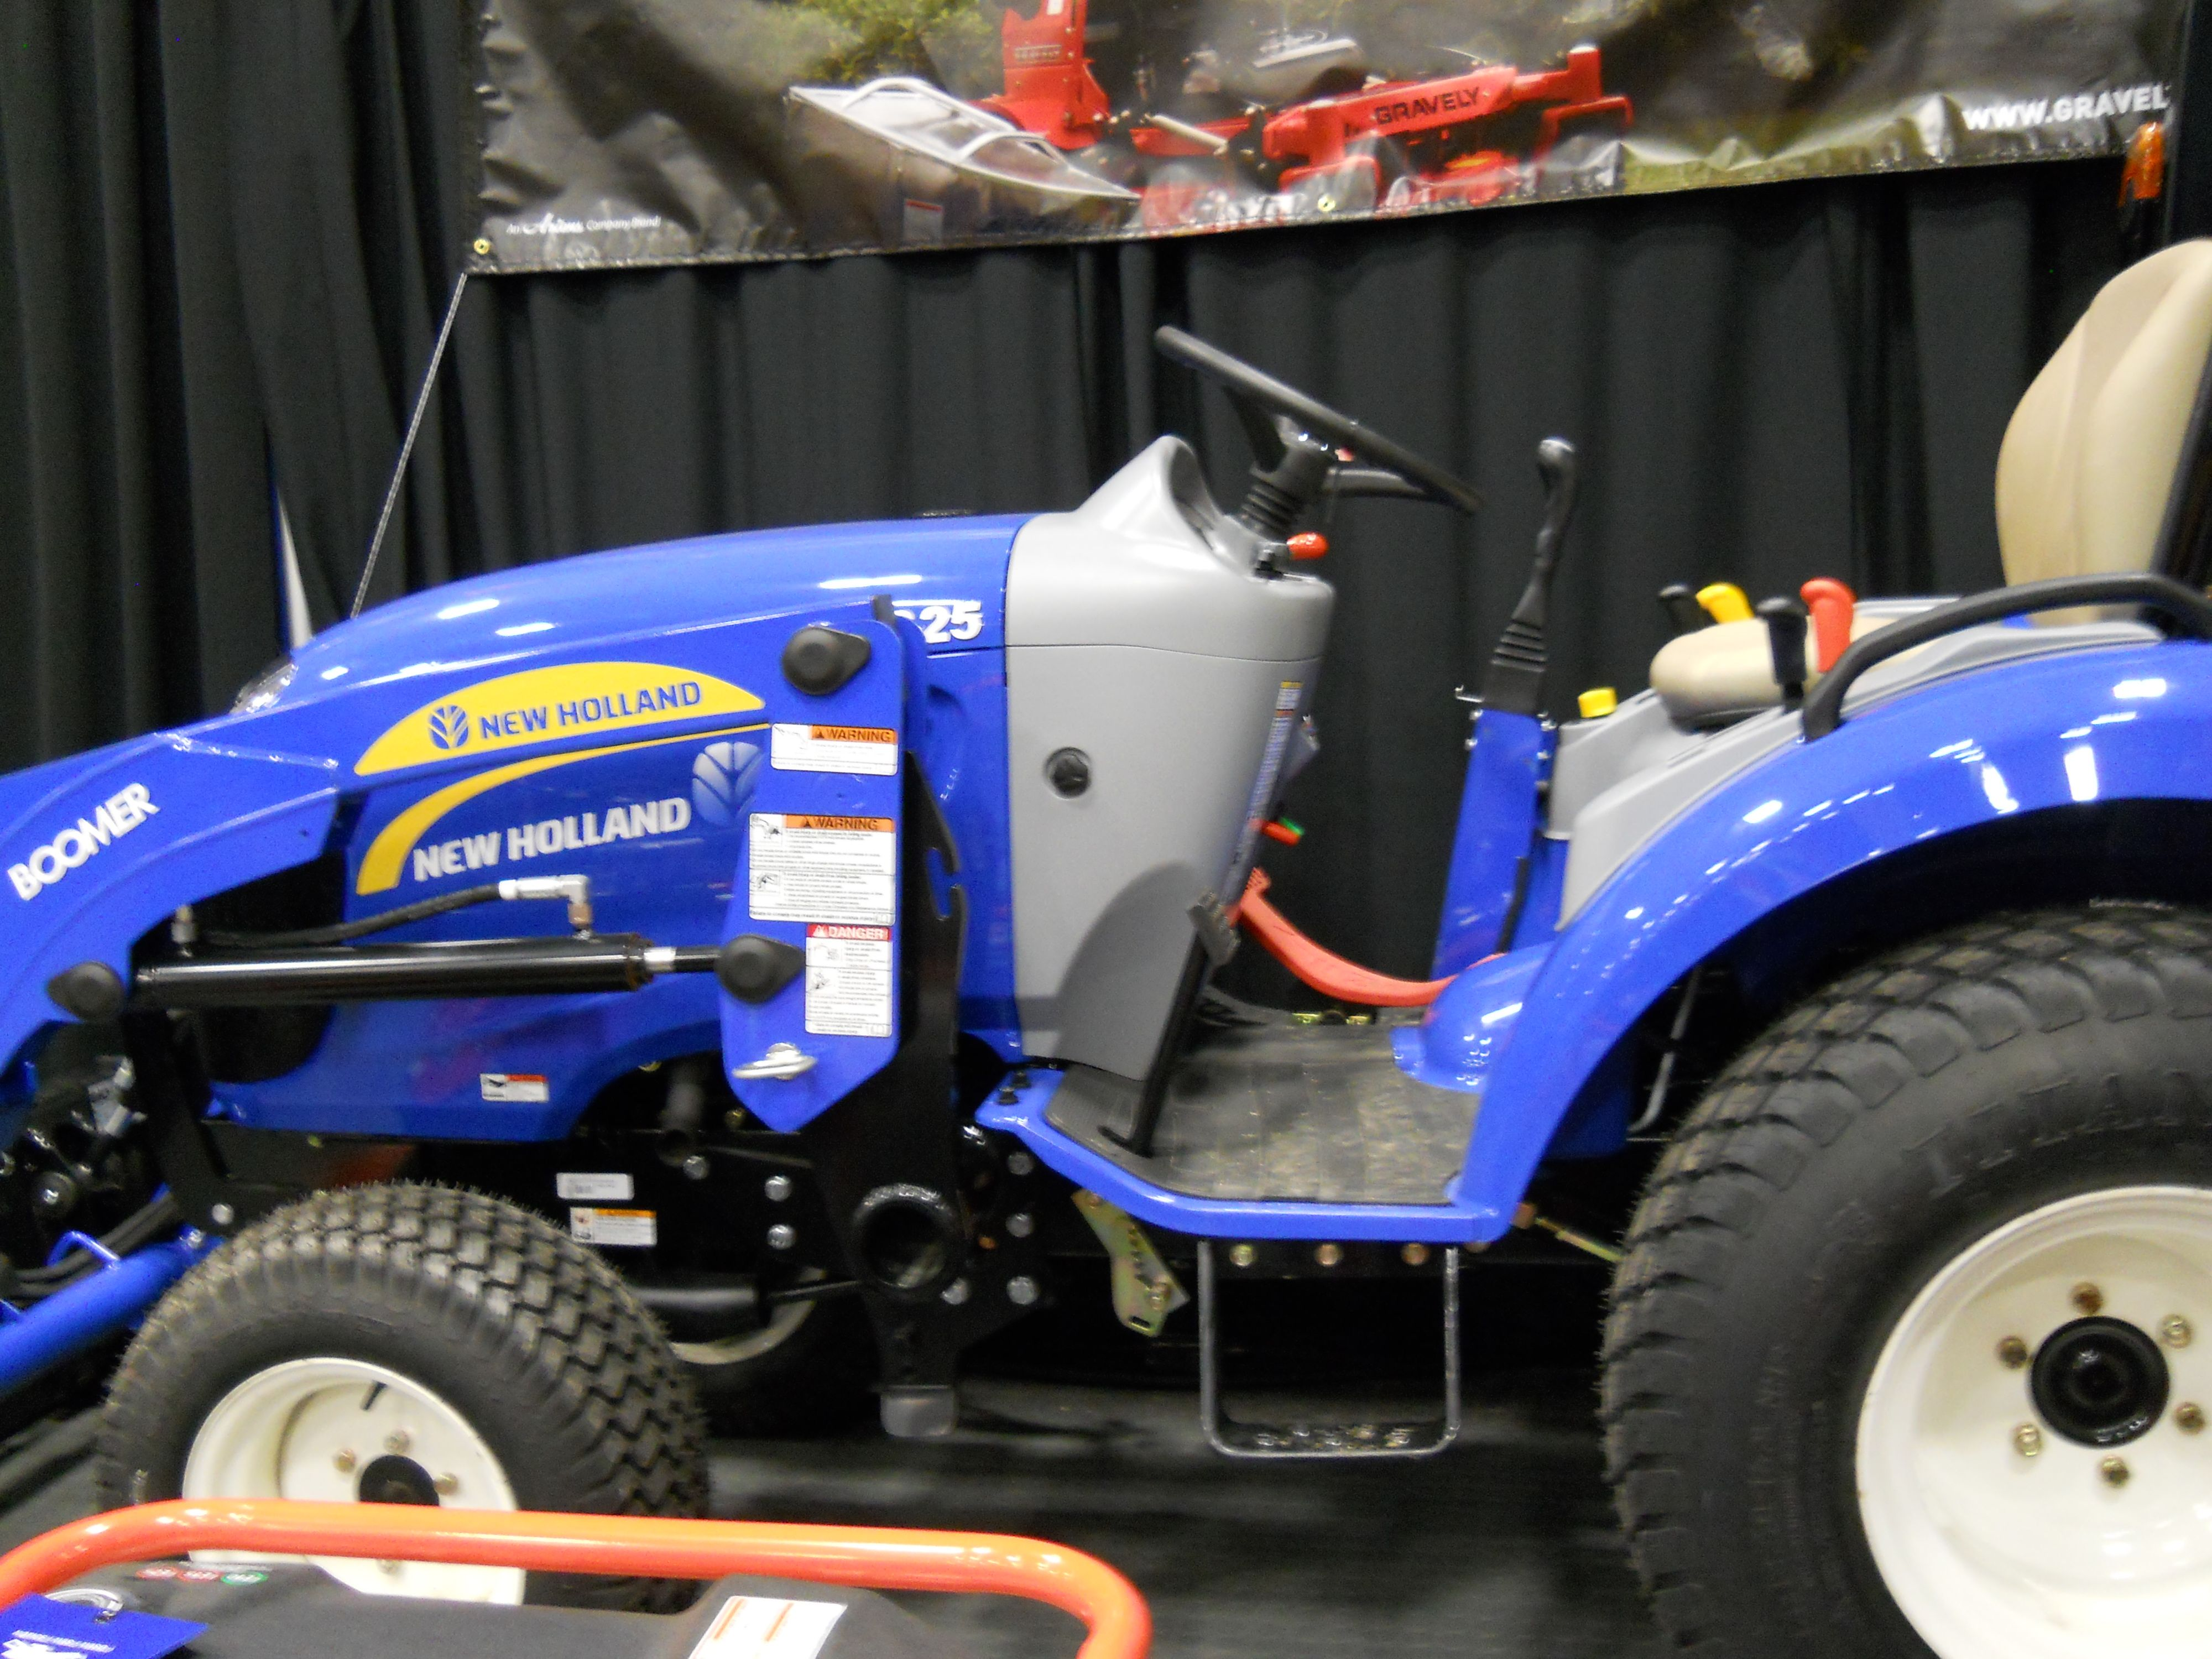 New Holland Tractor Https Www Youtube Com User Viewwithme New Holland Tractor Tractors New Holland